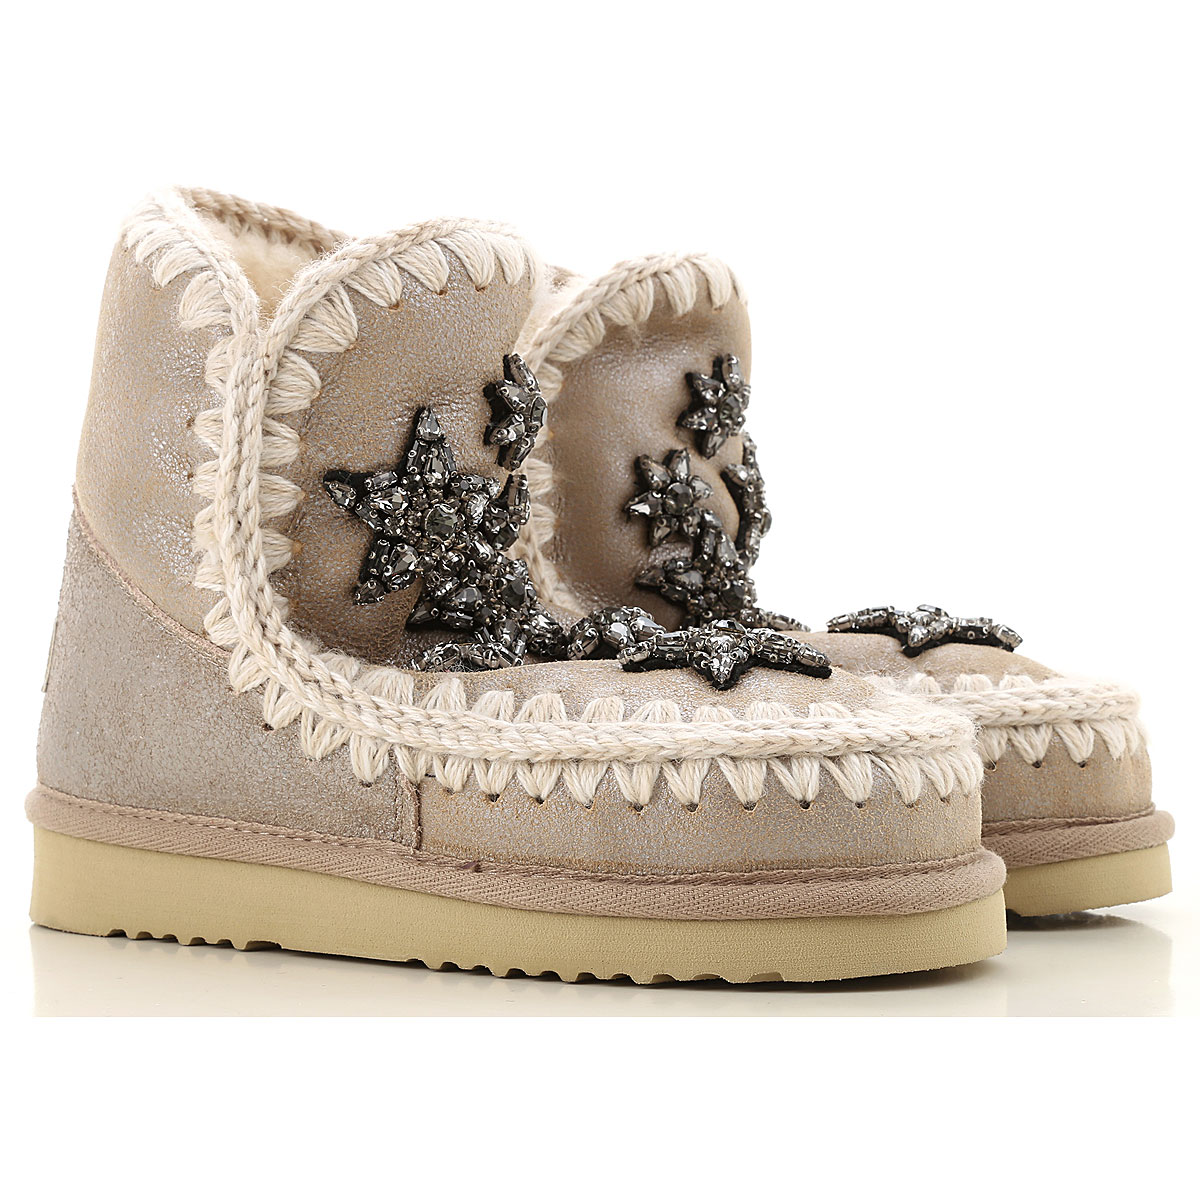 Mou Boots for Women, Booties On Sale, Beige, Leather, 2019, EUR 36 - UK 3 - USA 5.5 EUR 40 - UK 7 - USA 9.5